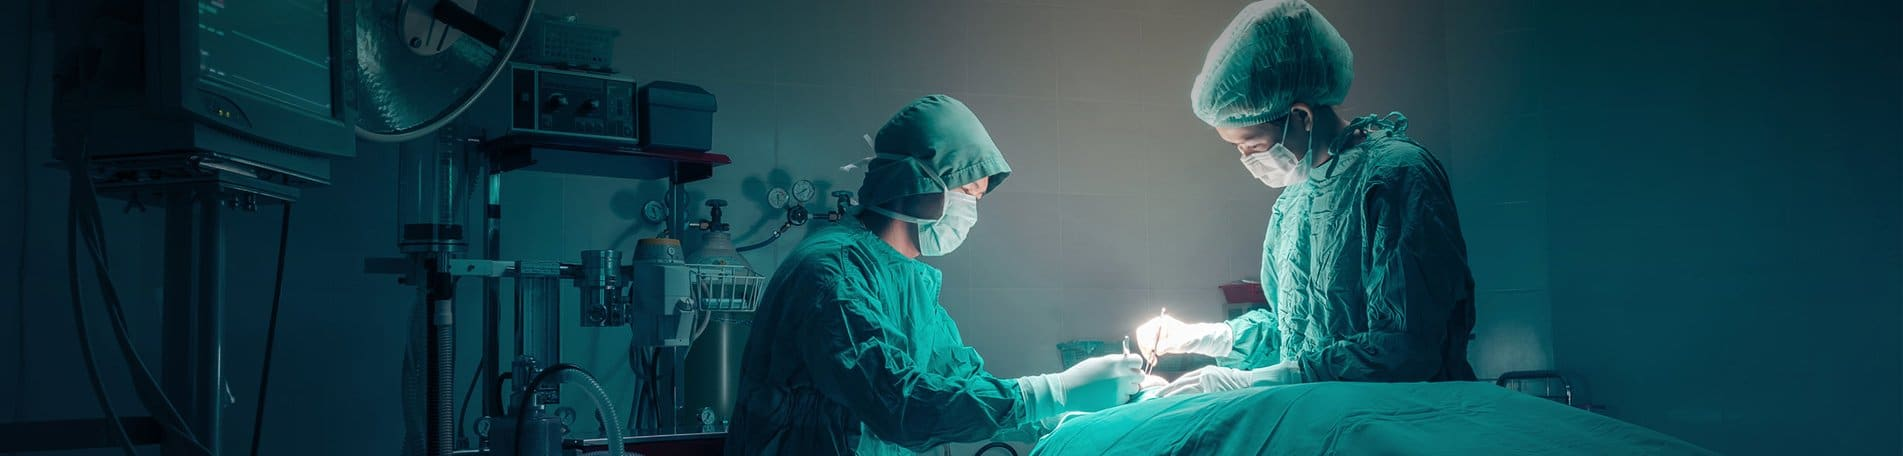 Surgeons in Operating Room | TeleMed Inc.